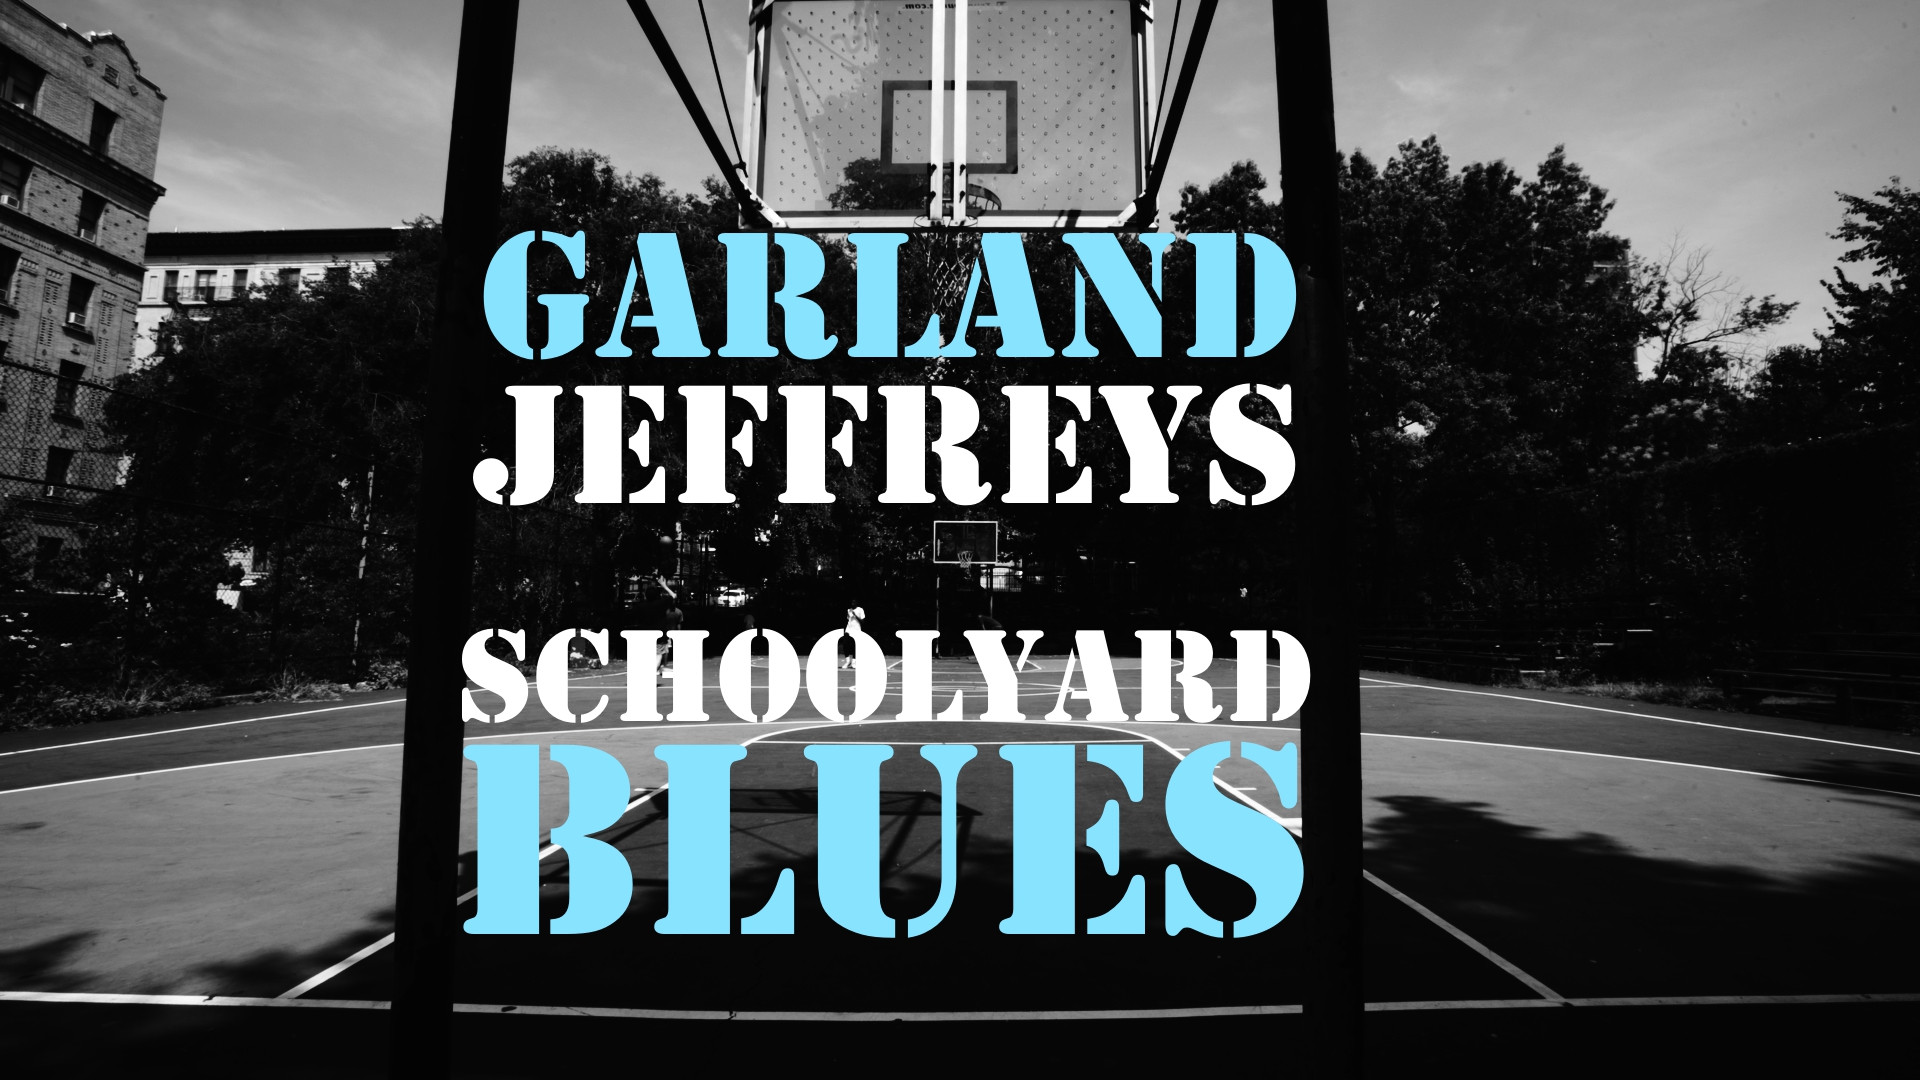 Schoolyard Blues (Official Music Video)